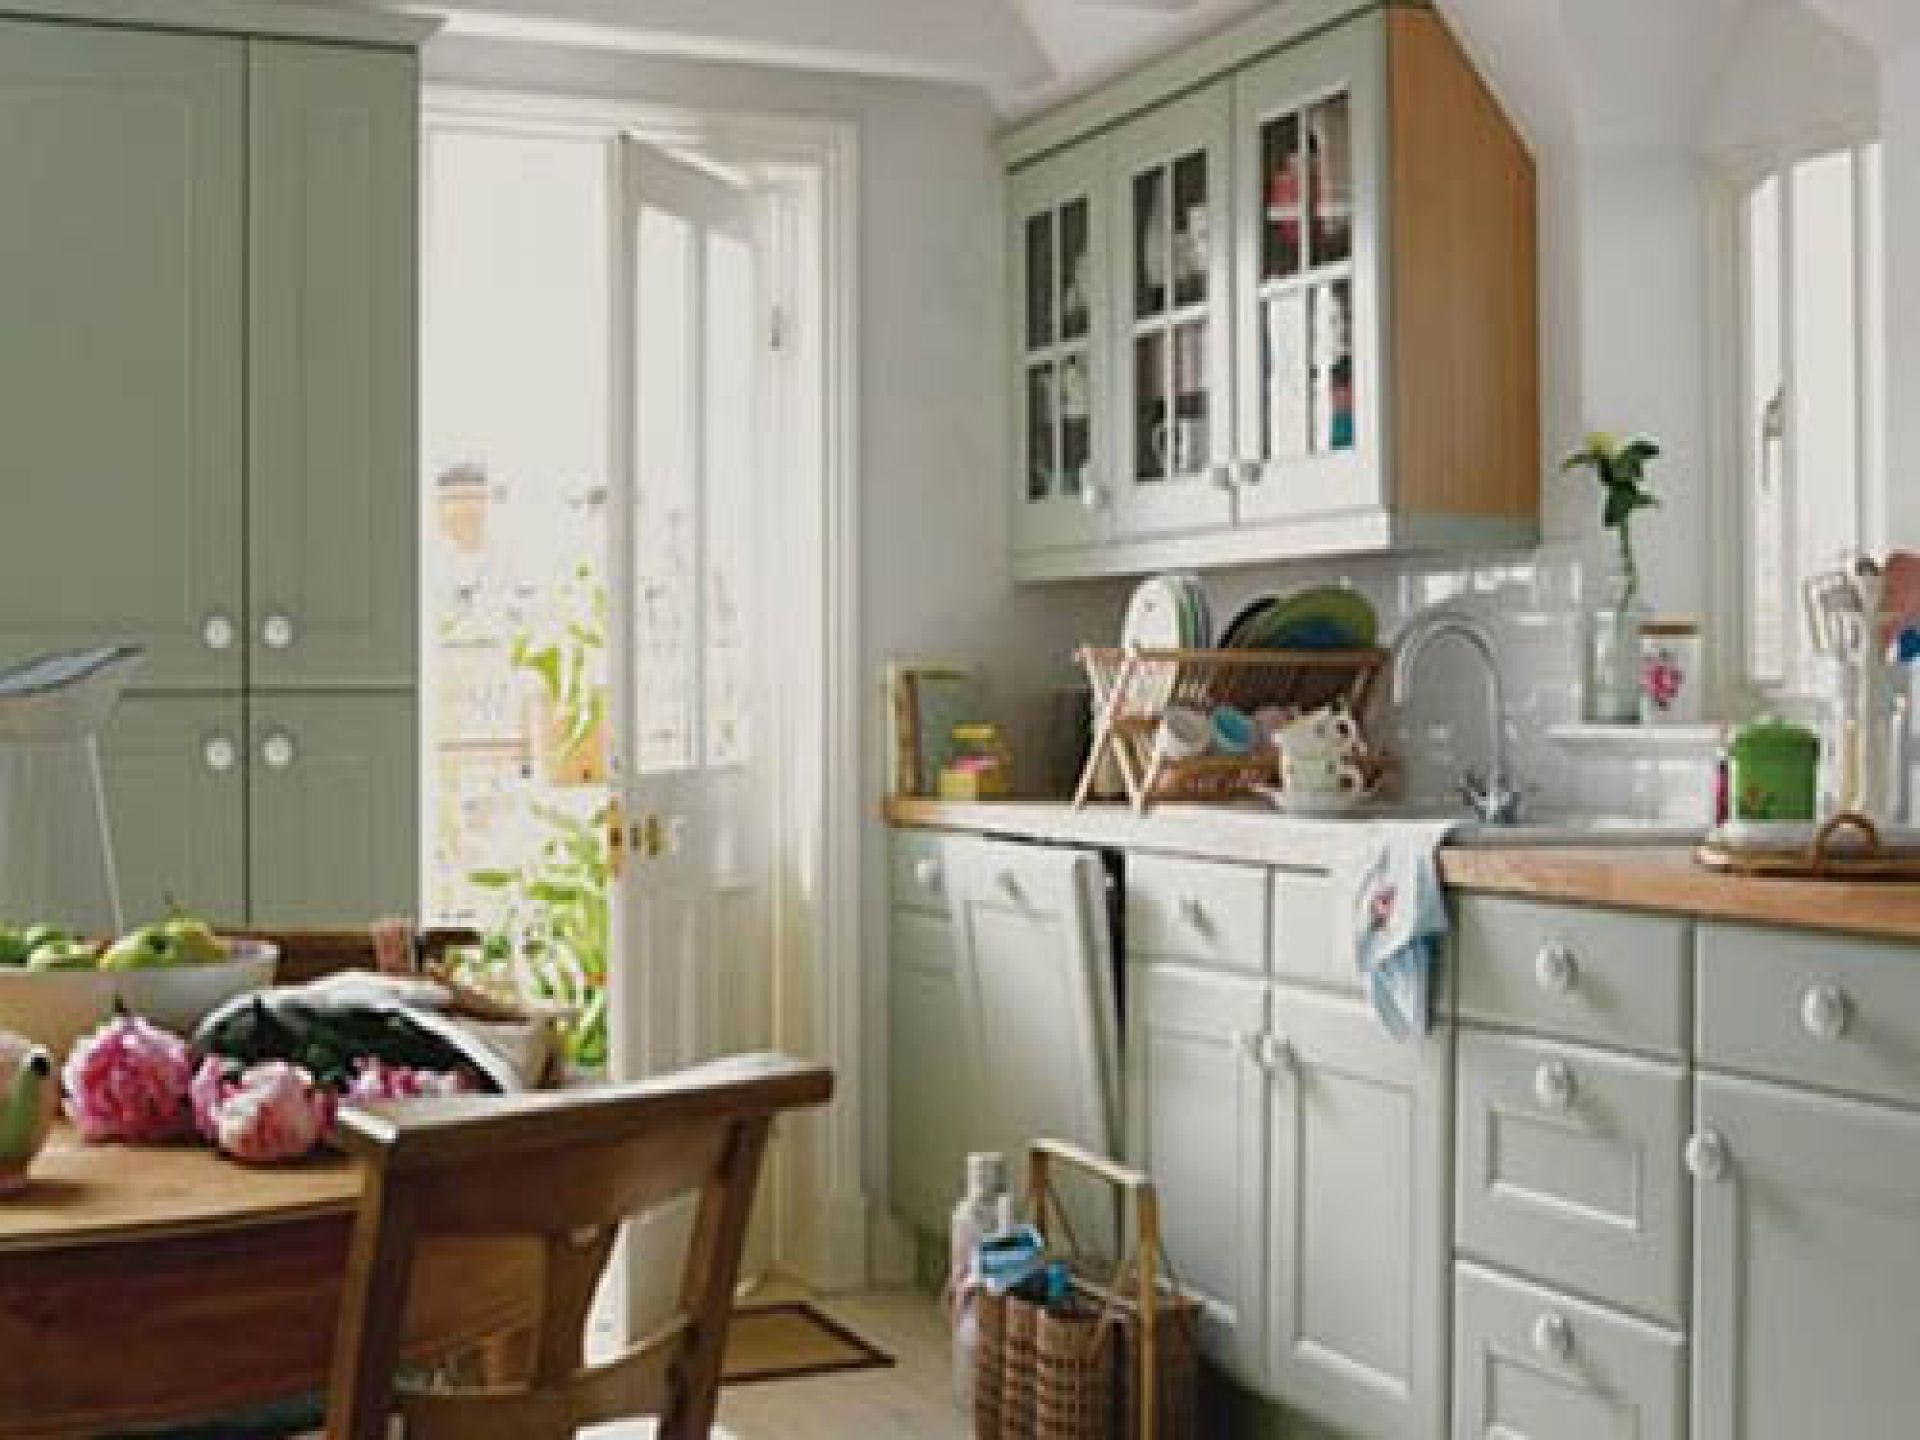 Simple Country Kitchen Designs 5 best country kitchen ideas - midcityeast